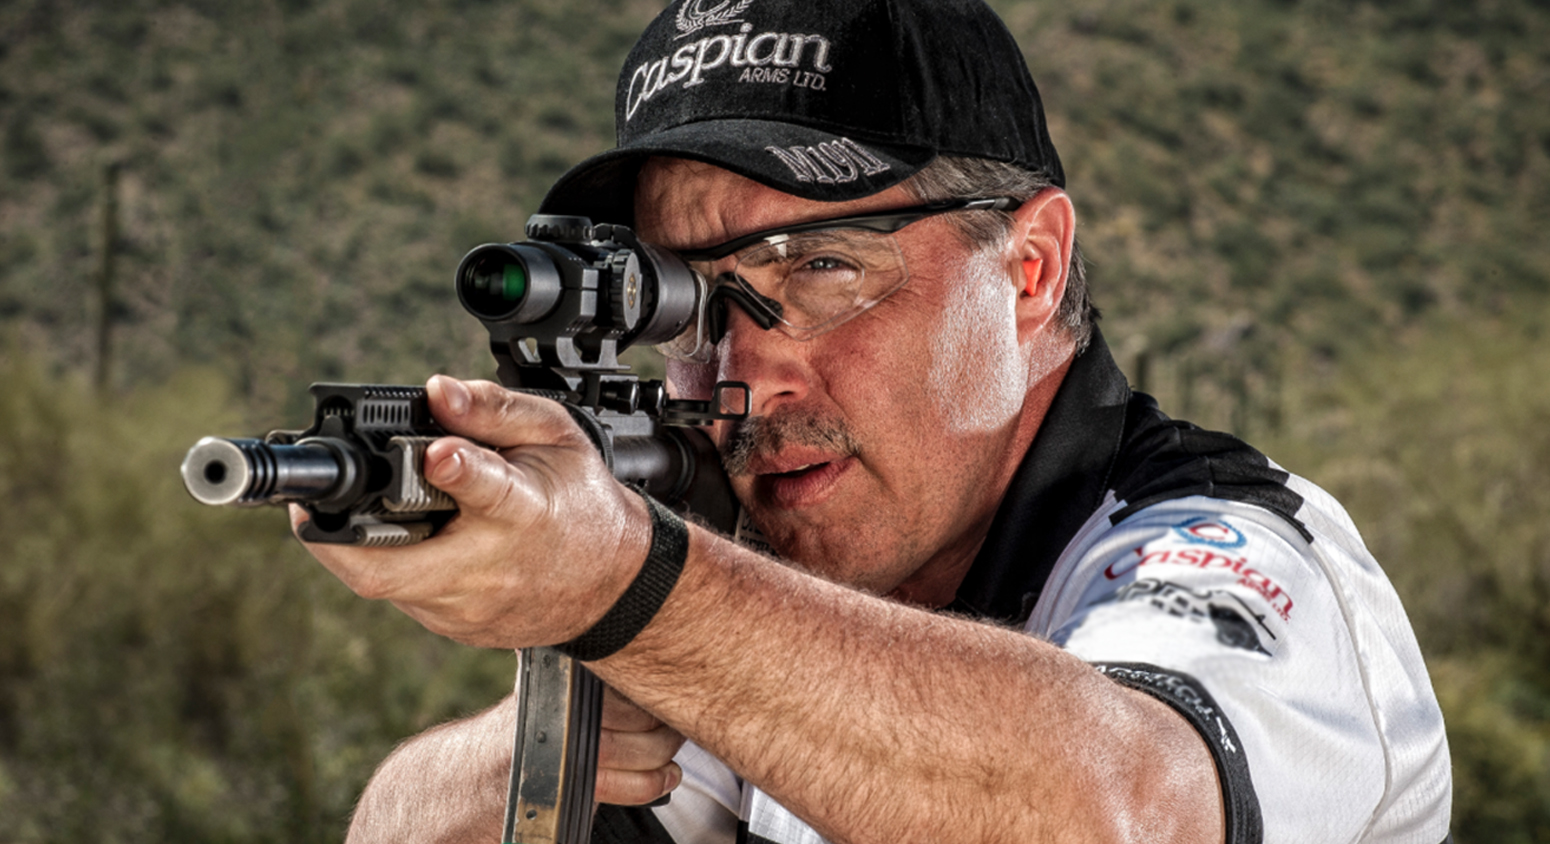 The Undisputed NRA World Shooting Champion: Bruce Piatt